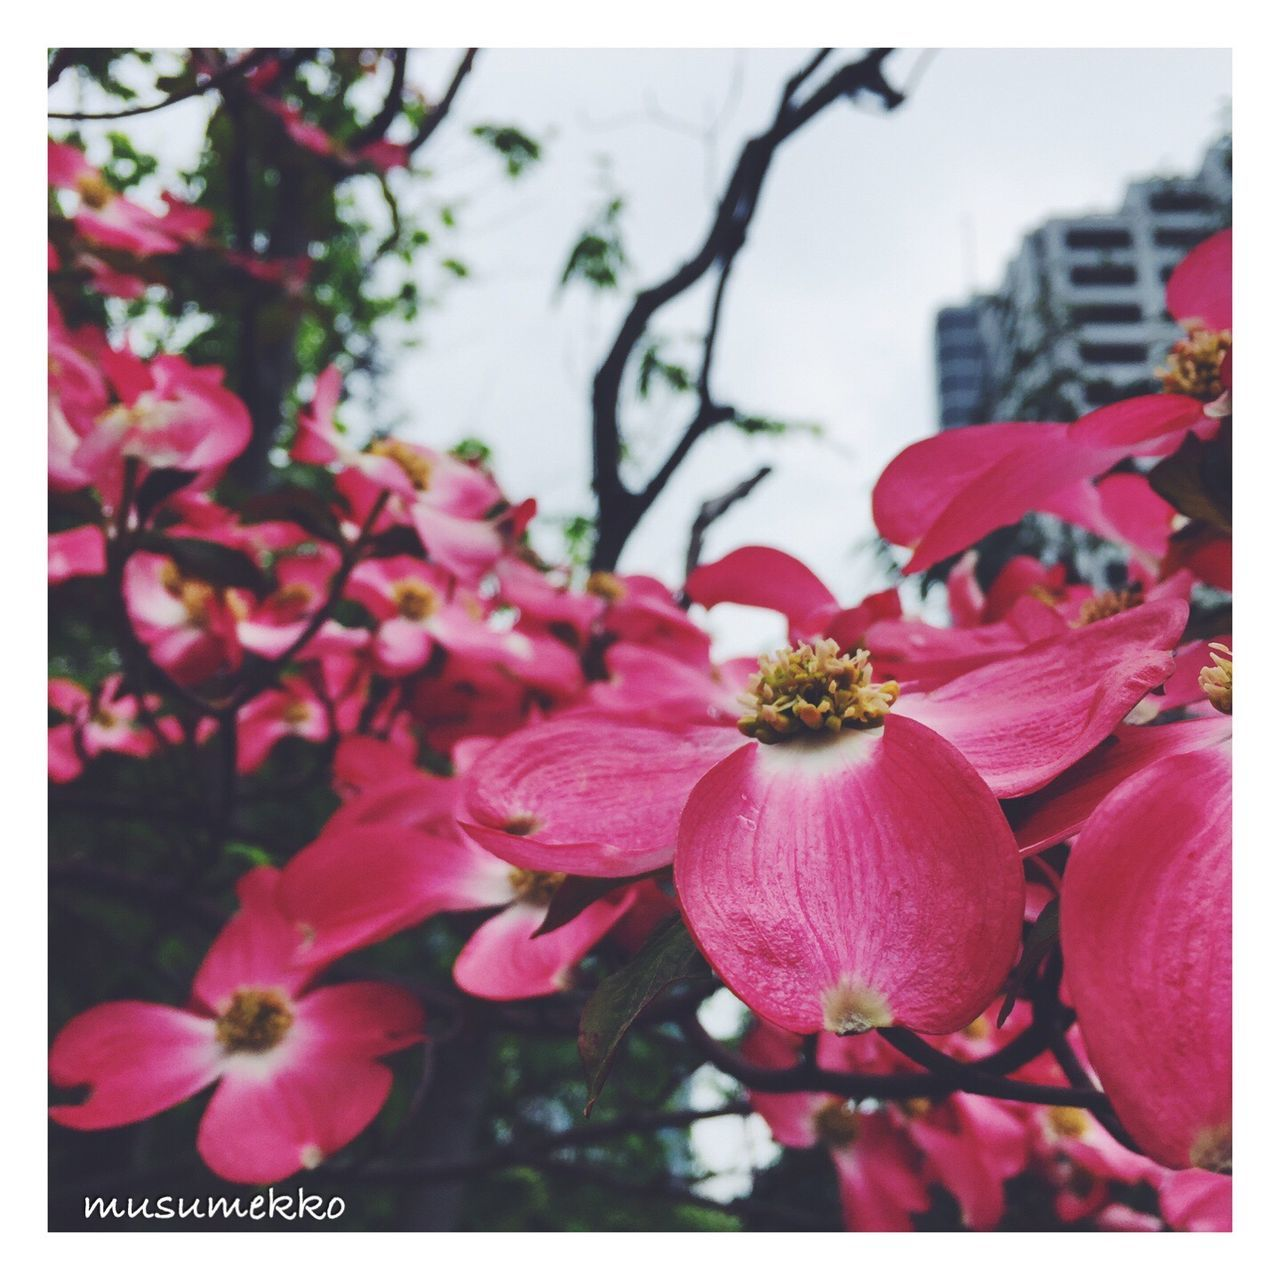 flower, fragility, petal, beauty in nature, nature, growth, flower head, freshness, no people, pink color, close-up, plant, blooming, outdoors, day, branch, tree